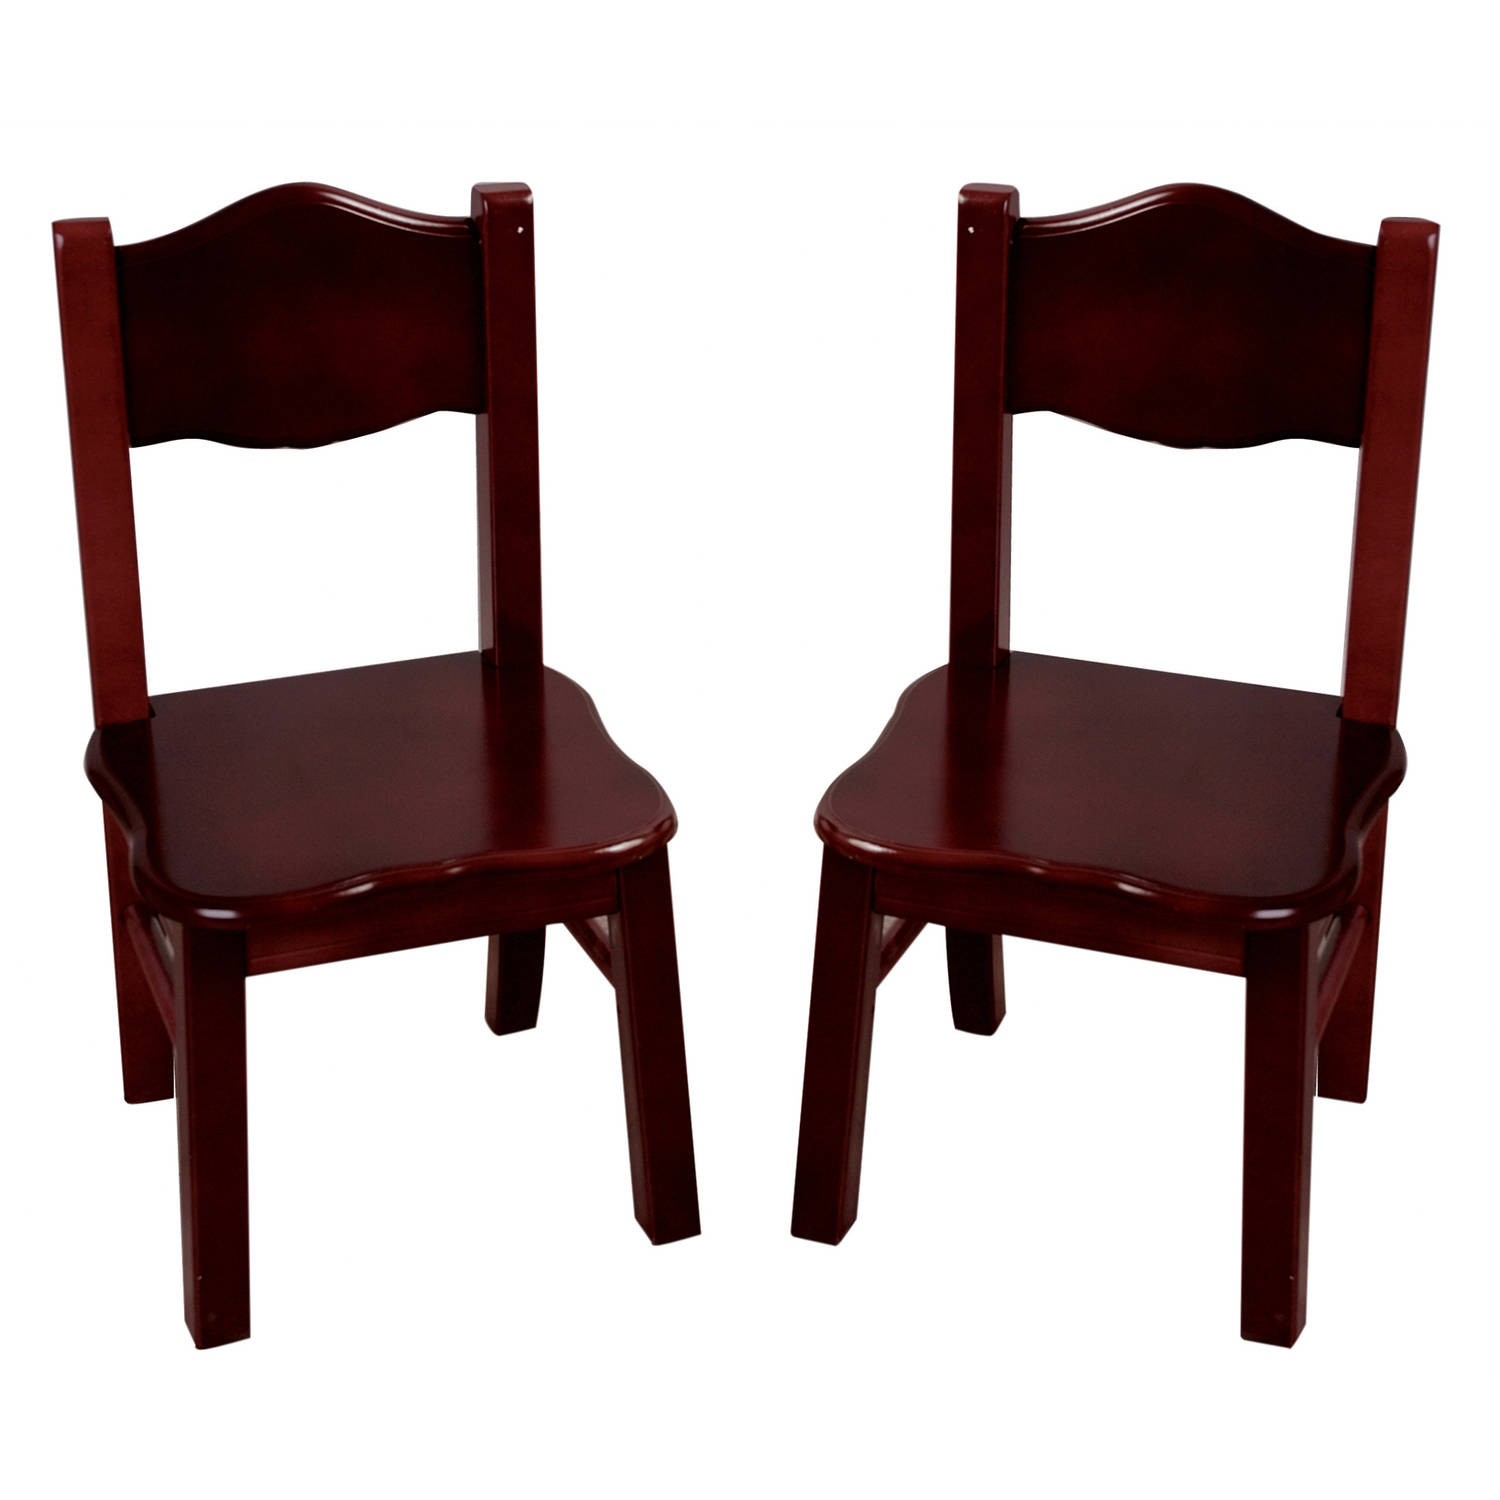 Guidecraft Set of 2 Extra Chairs, Classic Espresso